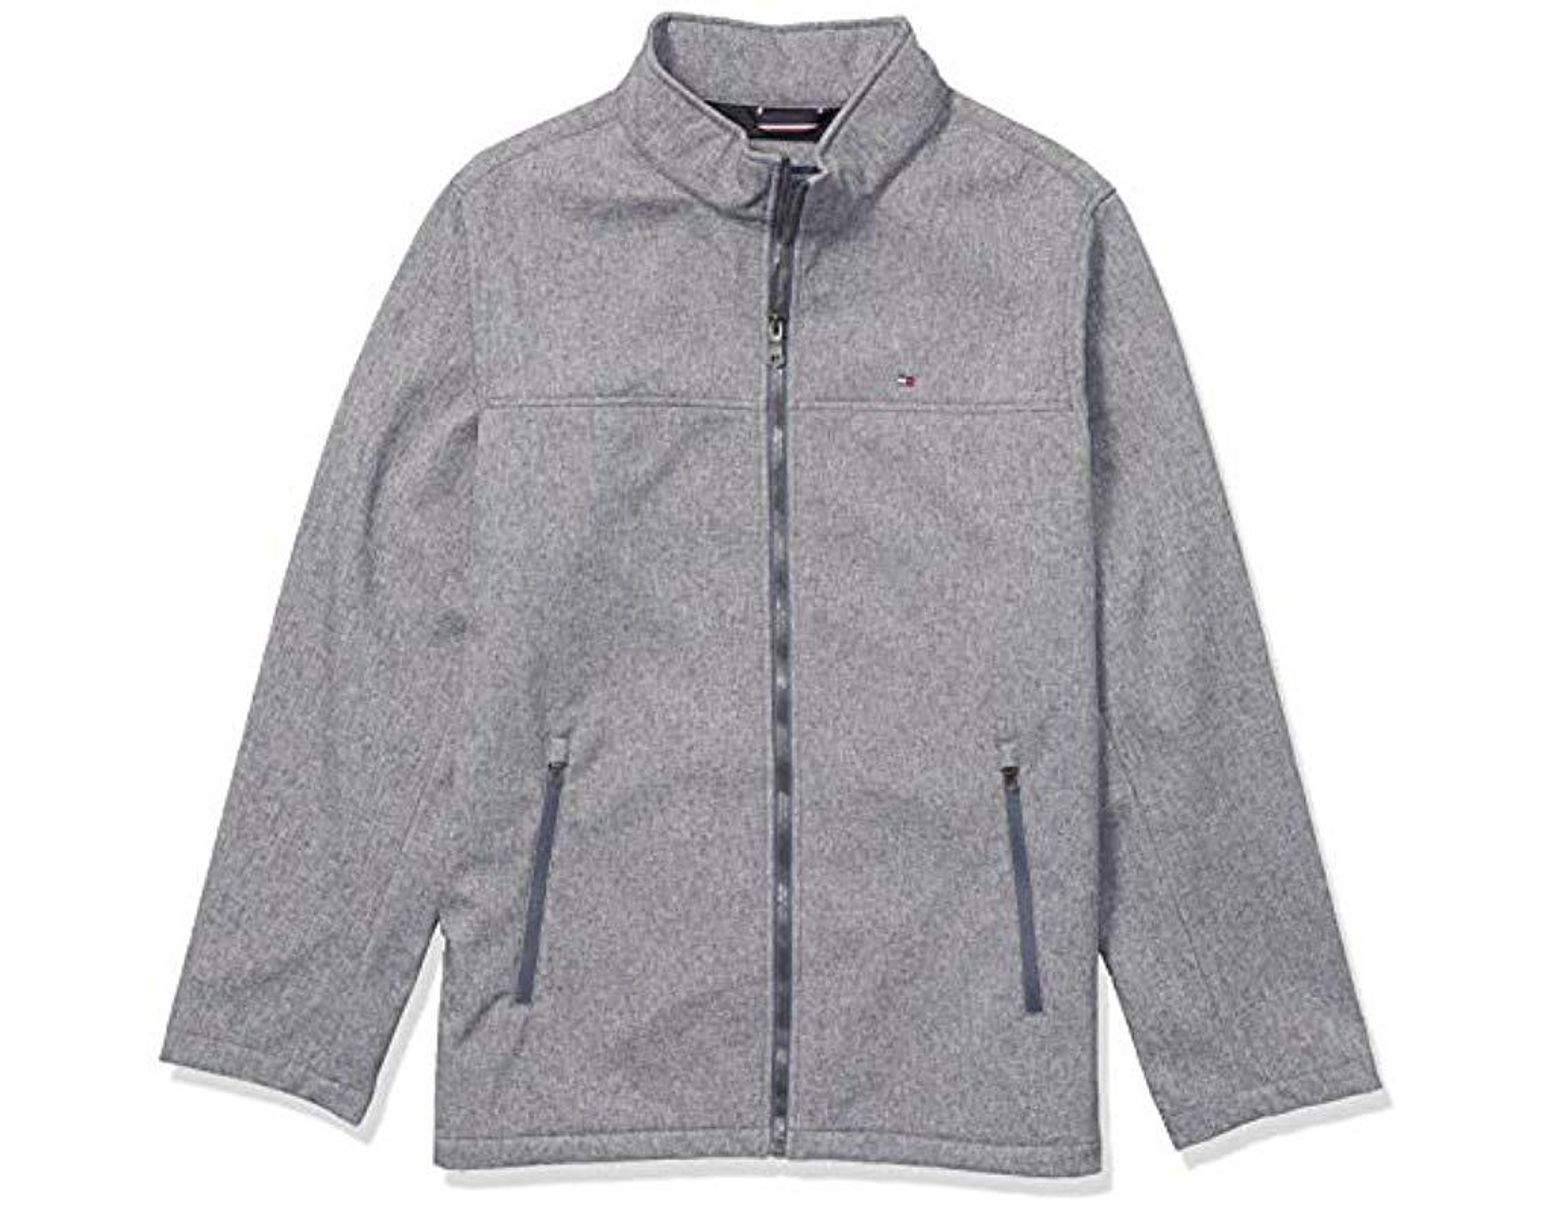 bdb23839 Tommy Hilfiger Classic Soft Shell Jacket (regular & Big-tall Sizes) in Gray  for Men - Lyst